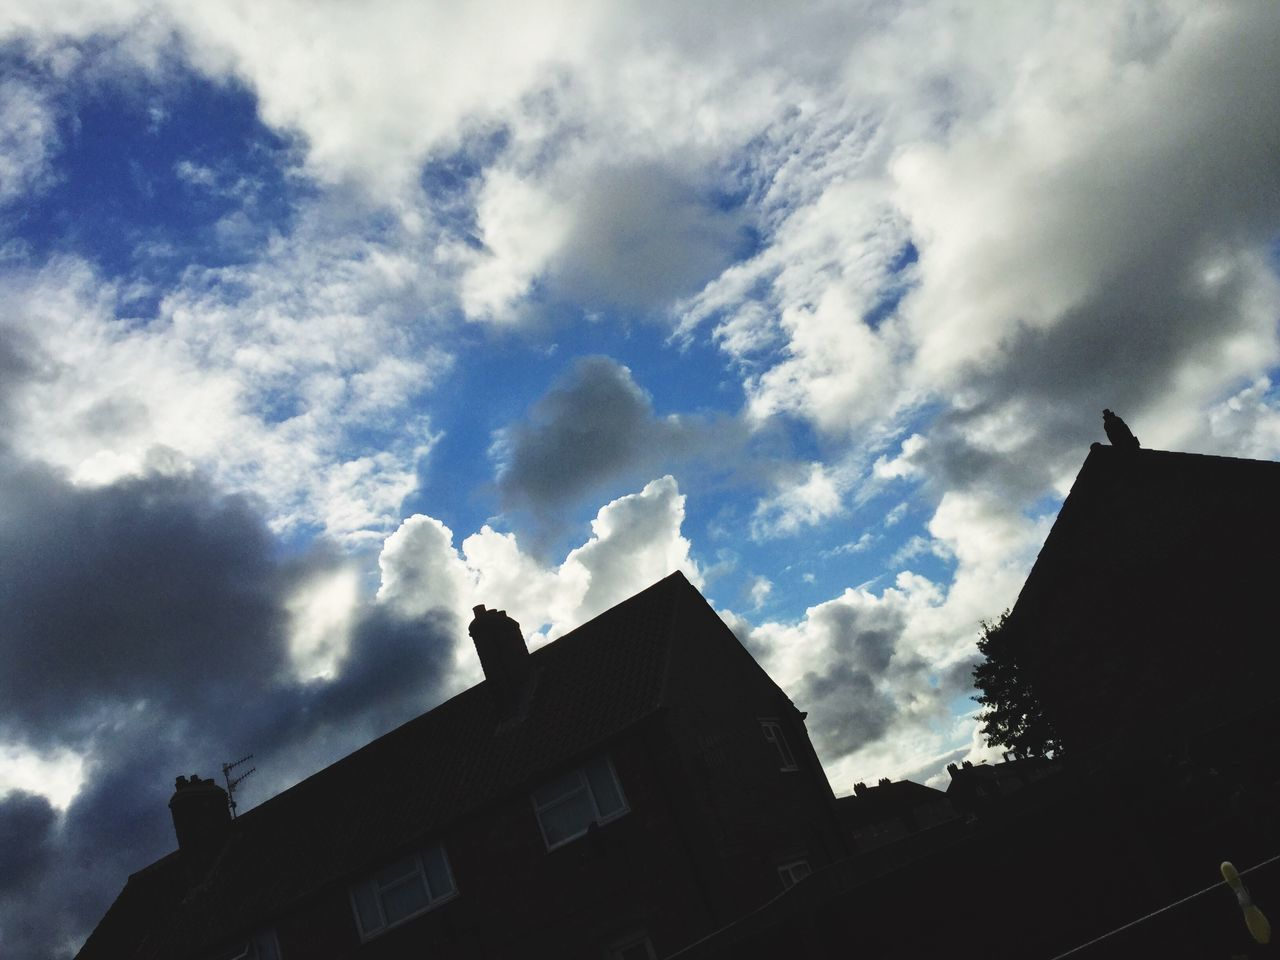 architecture, building exterior, low angle view, built structure, cloud - sky, sky, no people, silhouette, outdoors, roof, day, bird